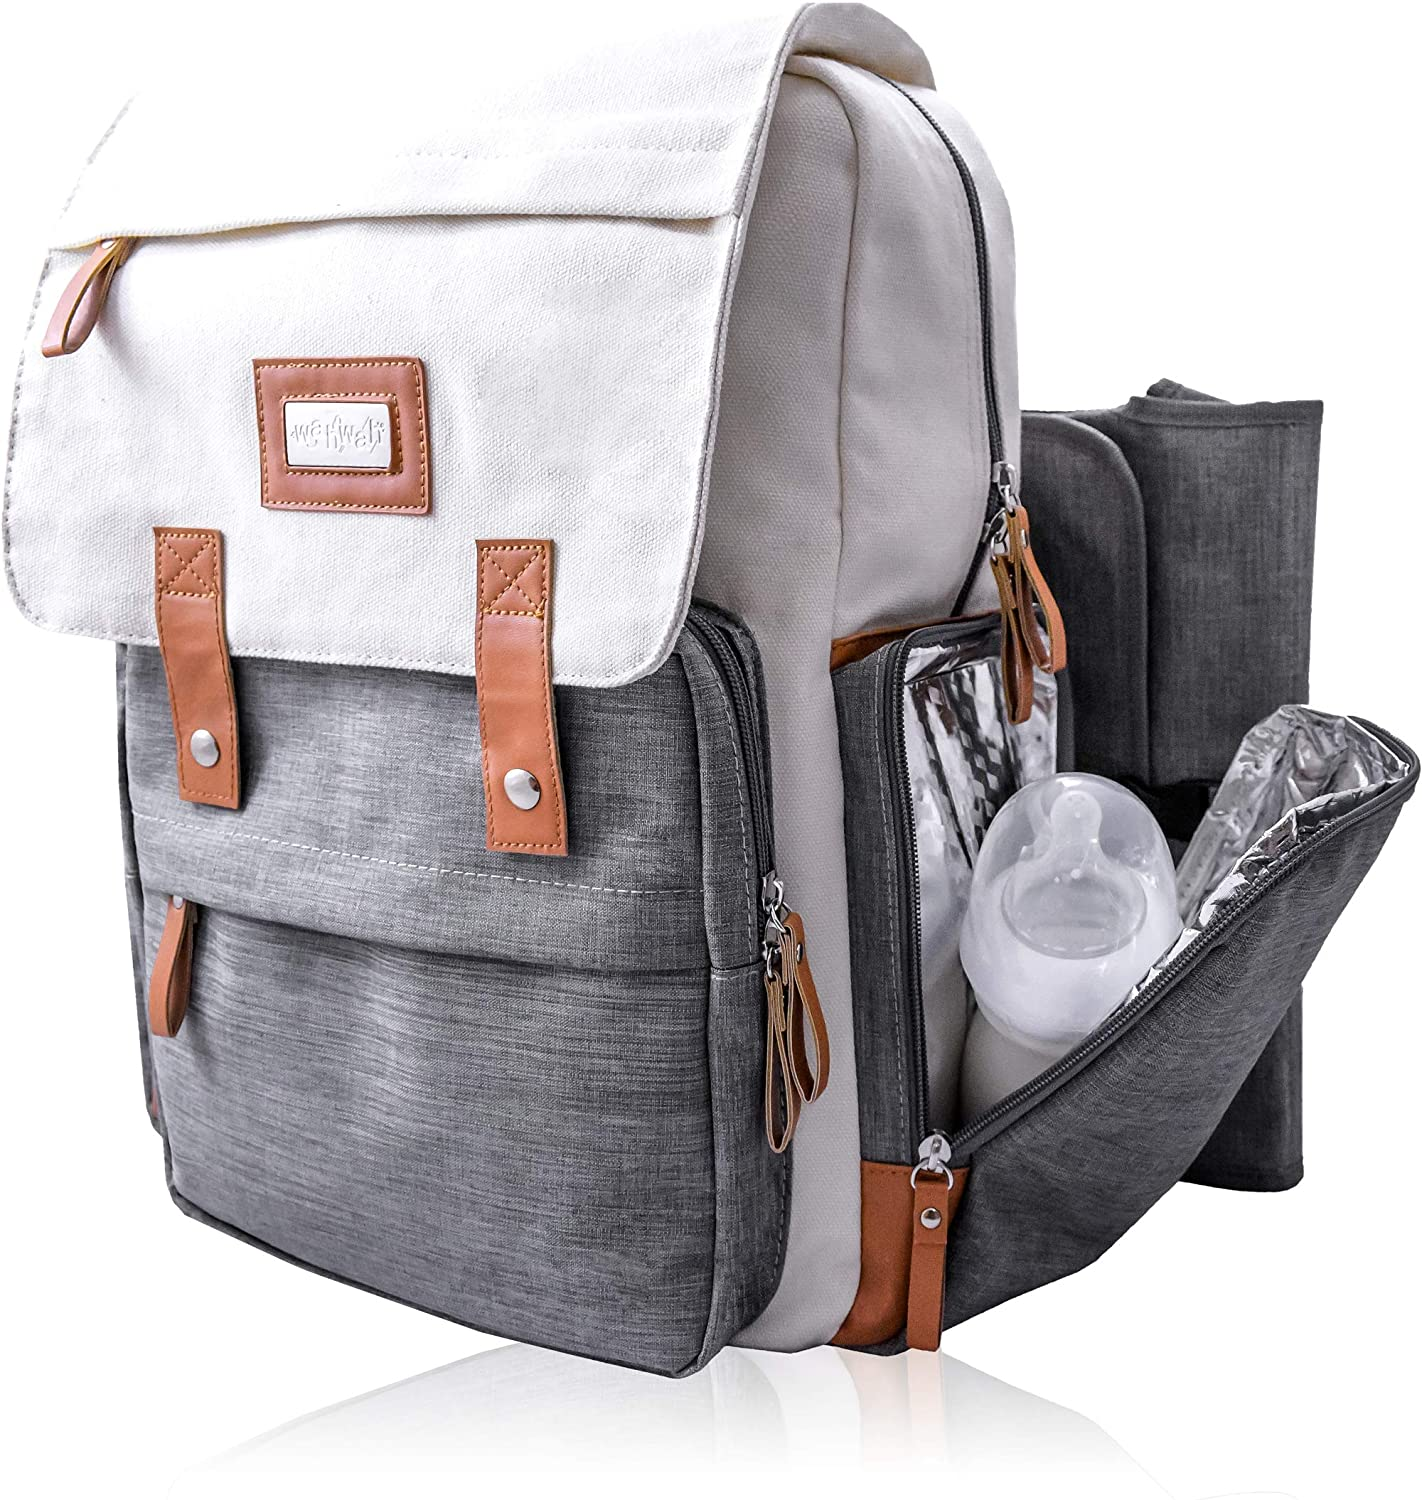 wahwah's diaper bag backpack, waterproof bag, insulated side pockets messenger bag, multi-functional with bonus straps and removable changing pad (cream/gray)